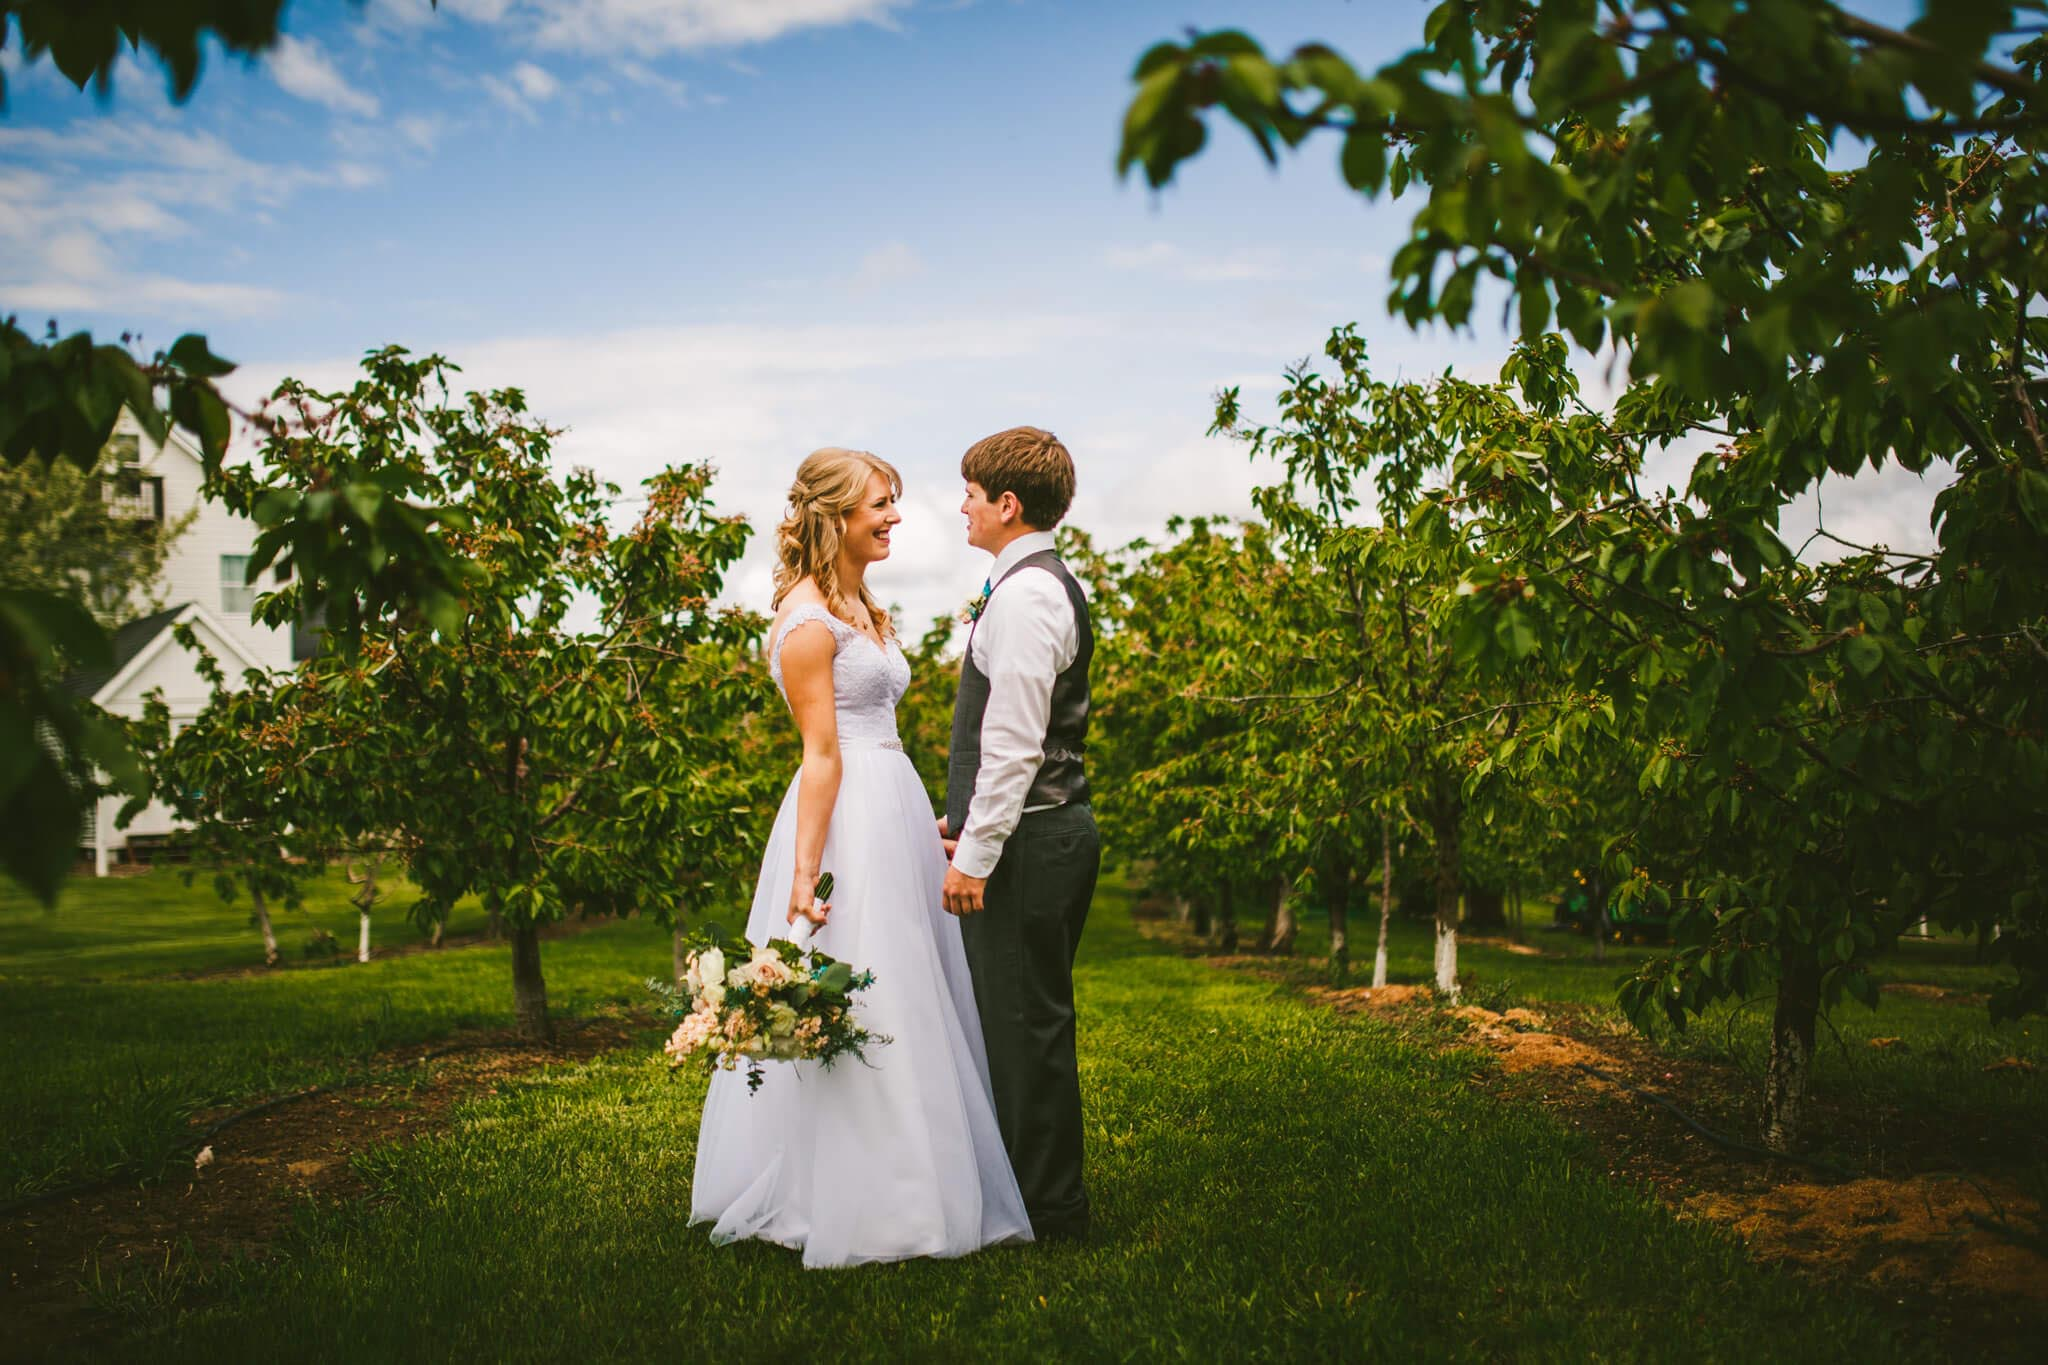 Spokane and Coeur d'Alene Wedding by Bill Weisgerber Photography 4 (1).jpg